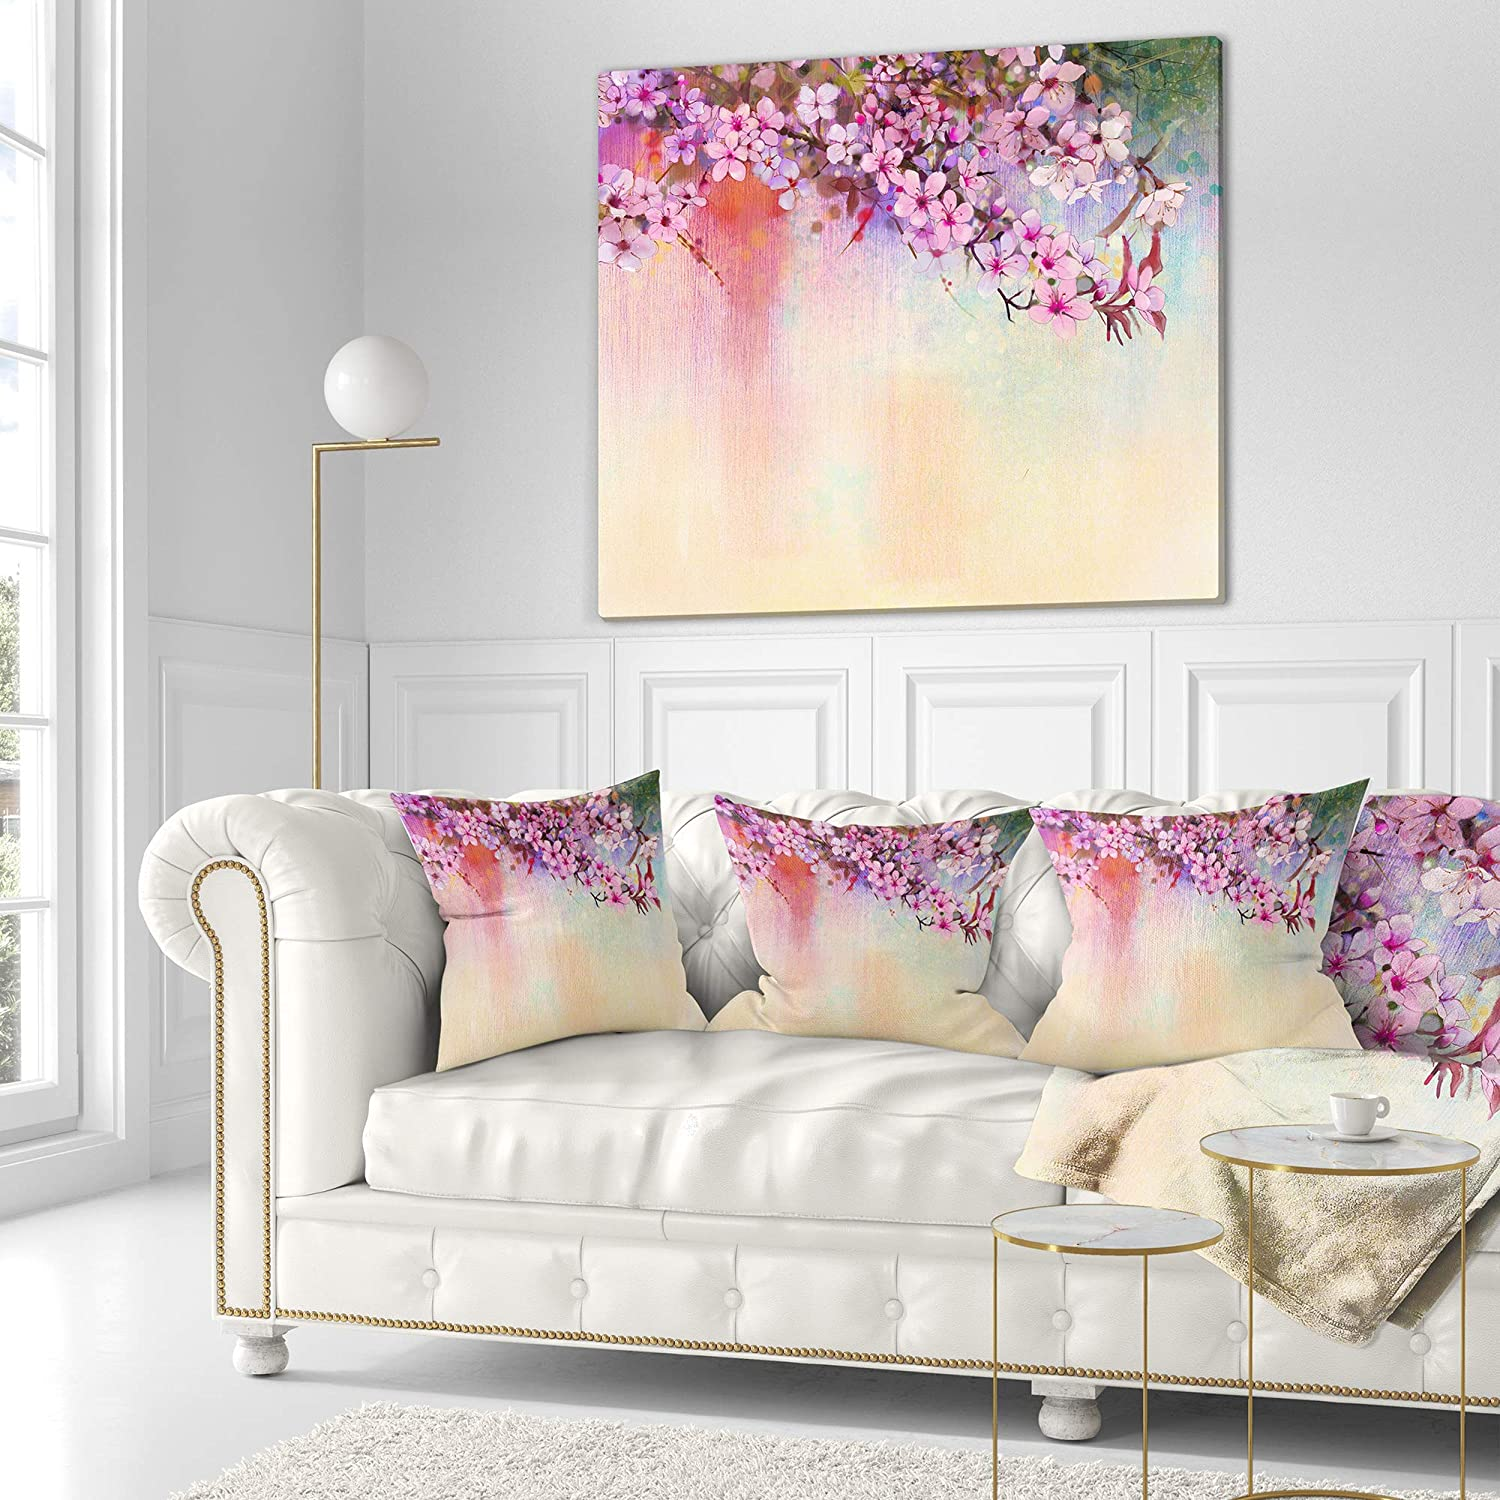 x 16 in Designart CU14088-16-16 Watercolor Painting Cherry Blossoms Floral Cushion Cover for Living Room in Sofa Throw Pillow 16 in Insert Printed On Both Side